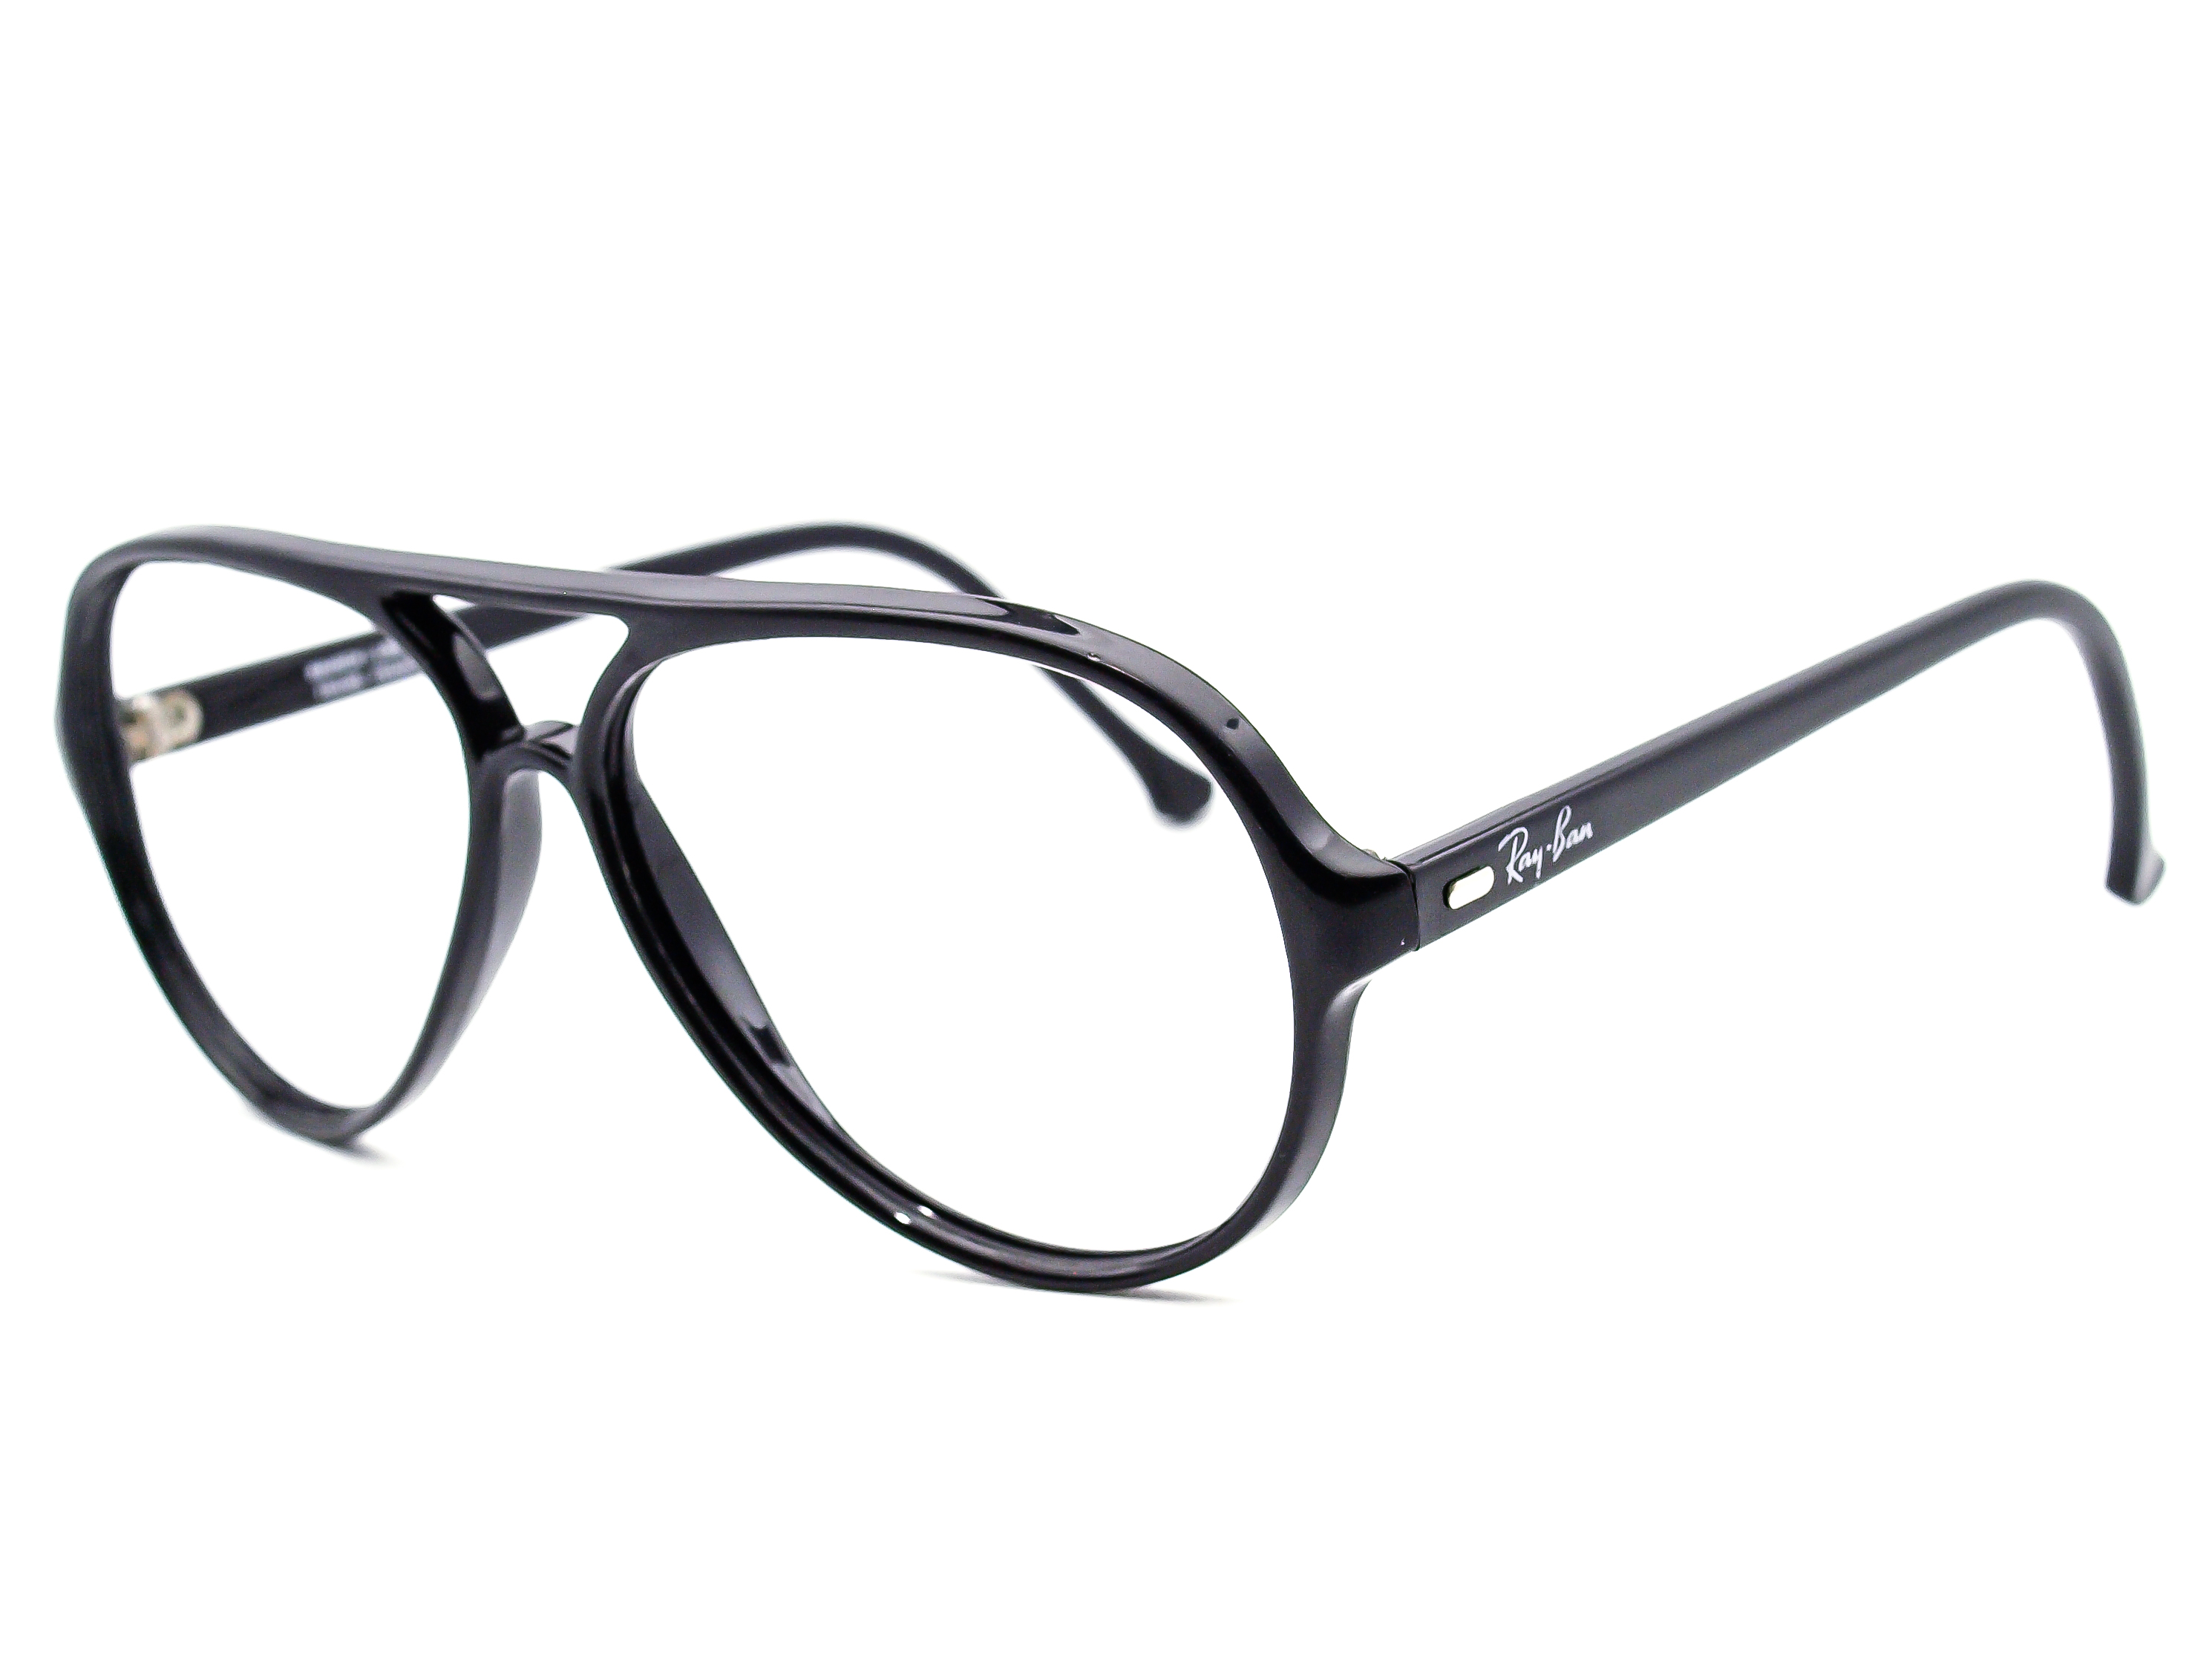 Ray Ban B&L  Sunglasses Frame Only